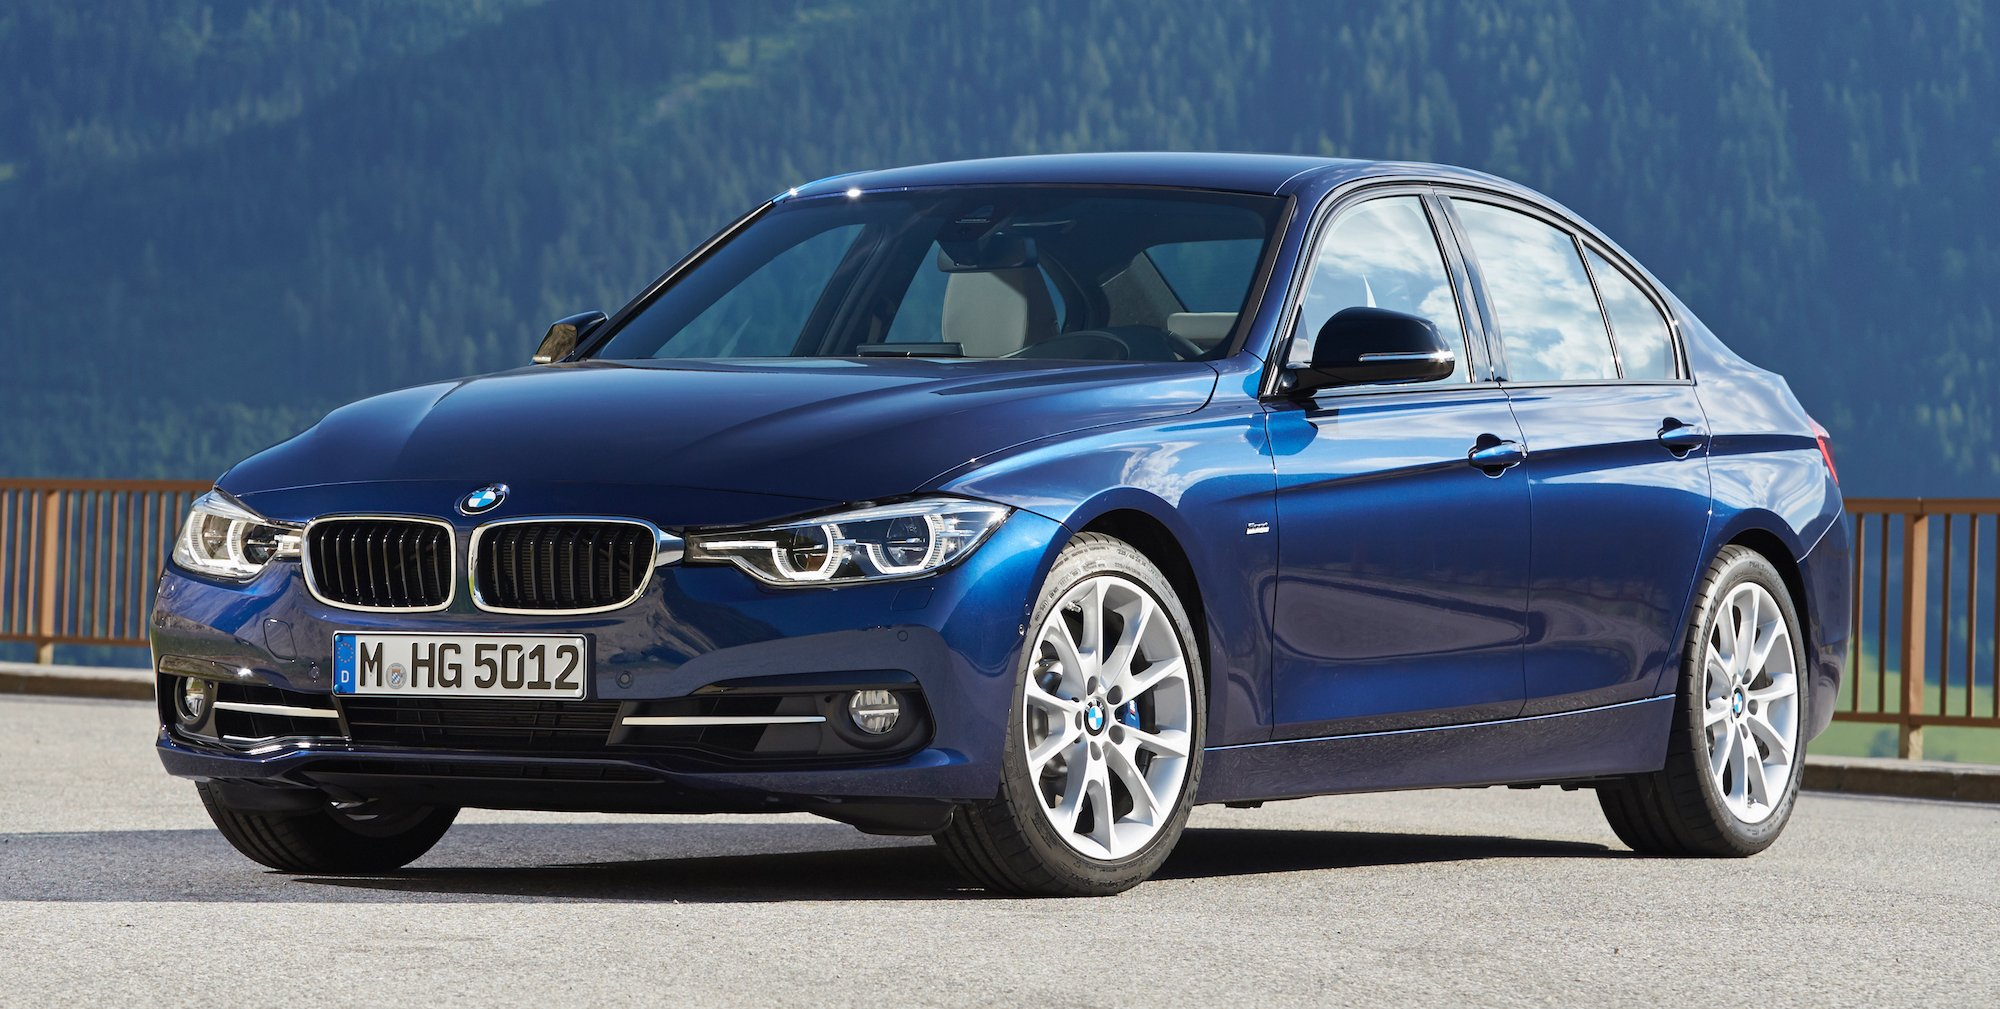 2016 Bmw 3 Series Pricing And Specifications Photos 1 Of 8